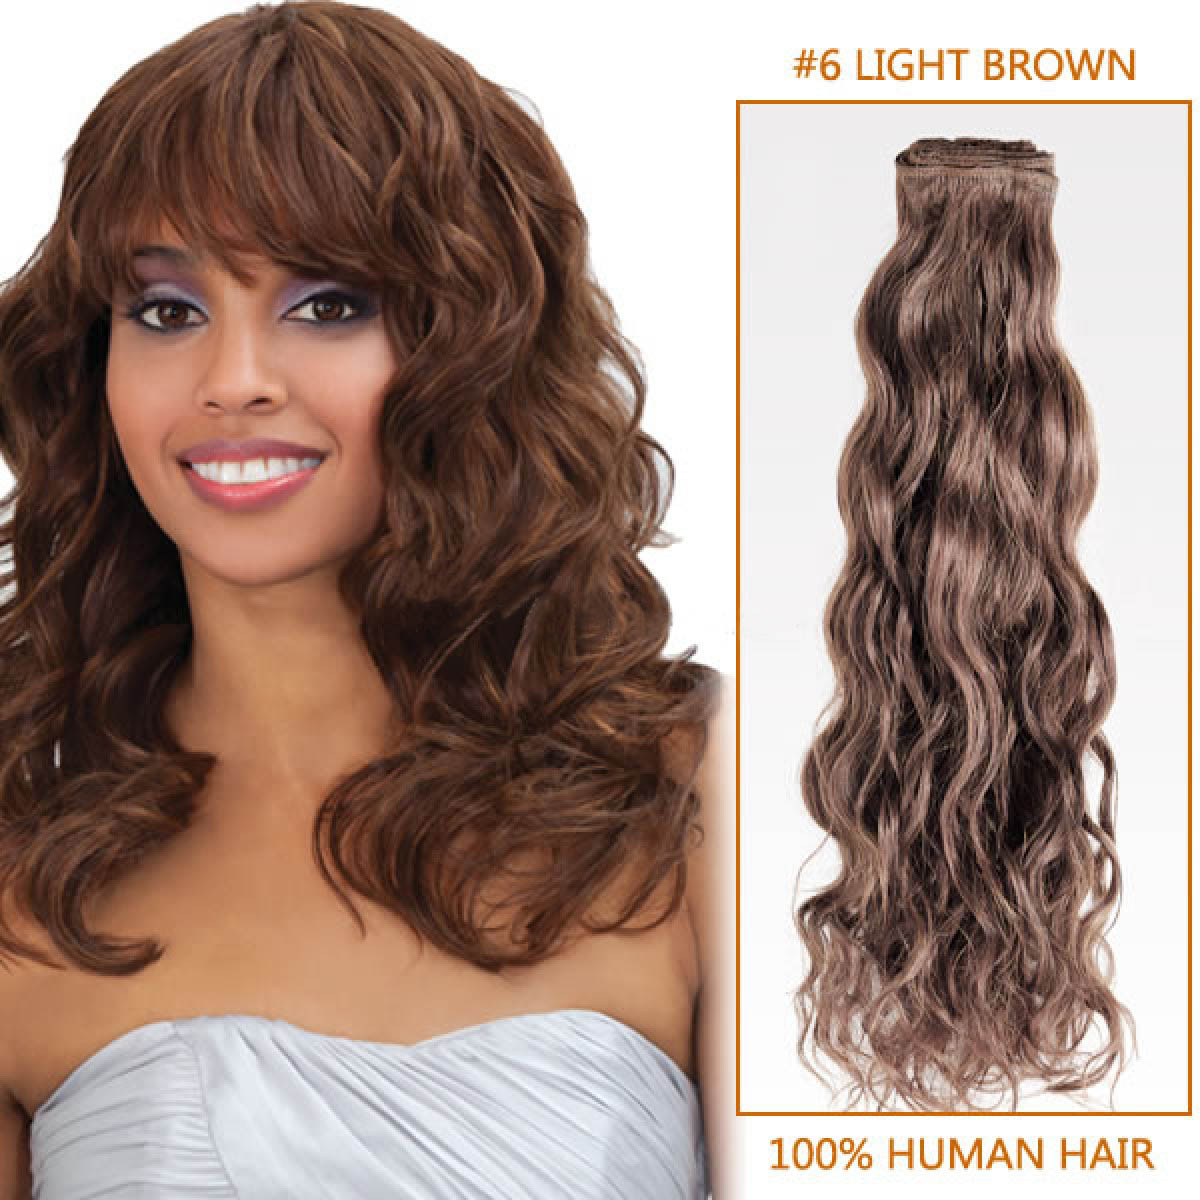 14 Inch 6 Light Brown Curly Brazilian Virgin Hair Wefts